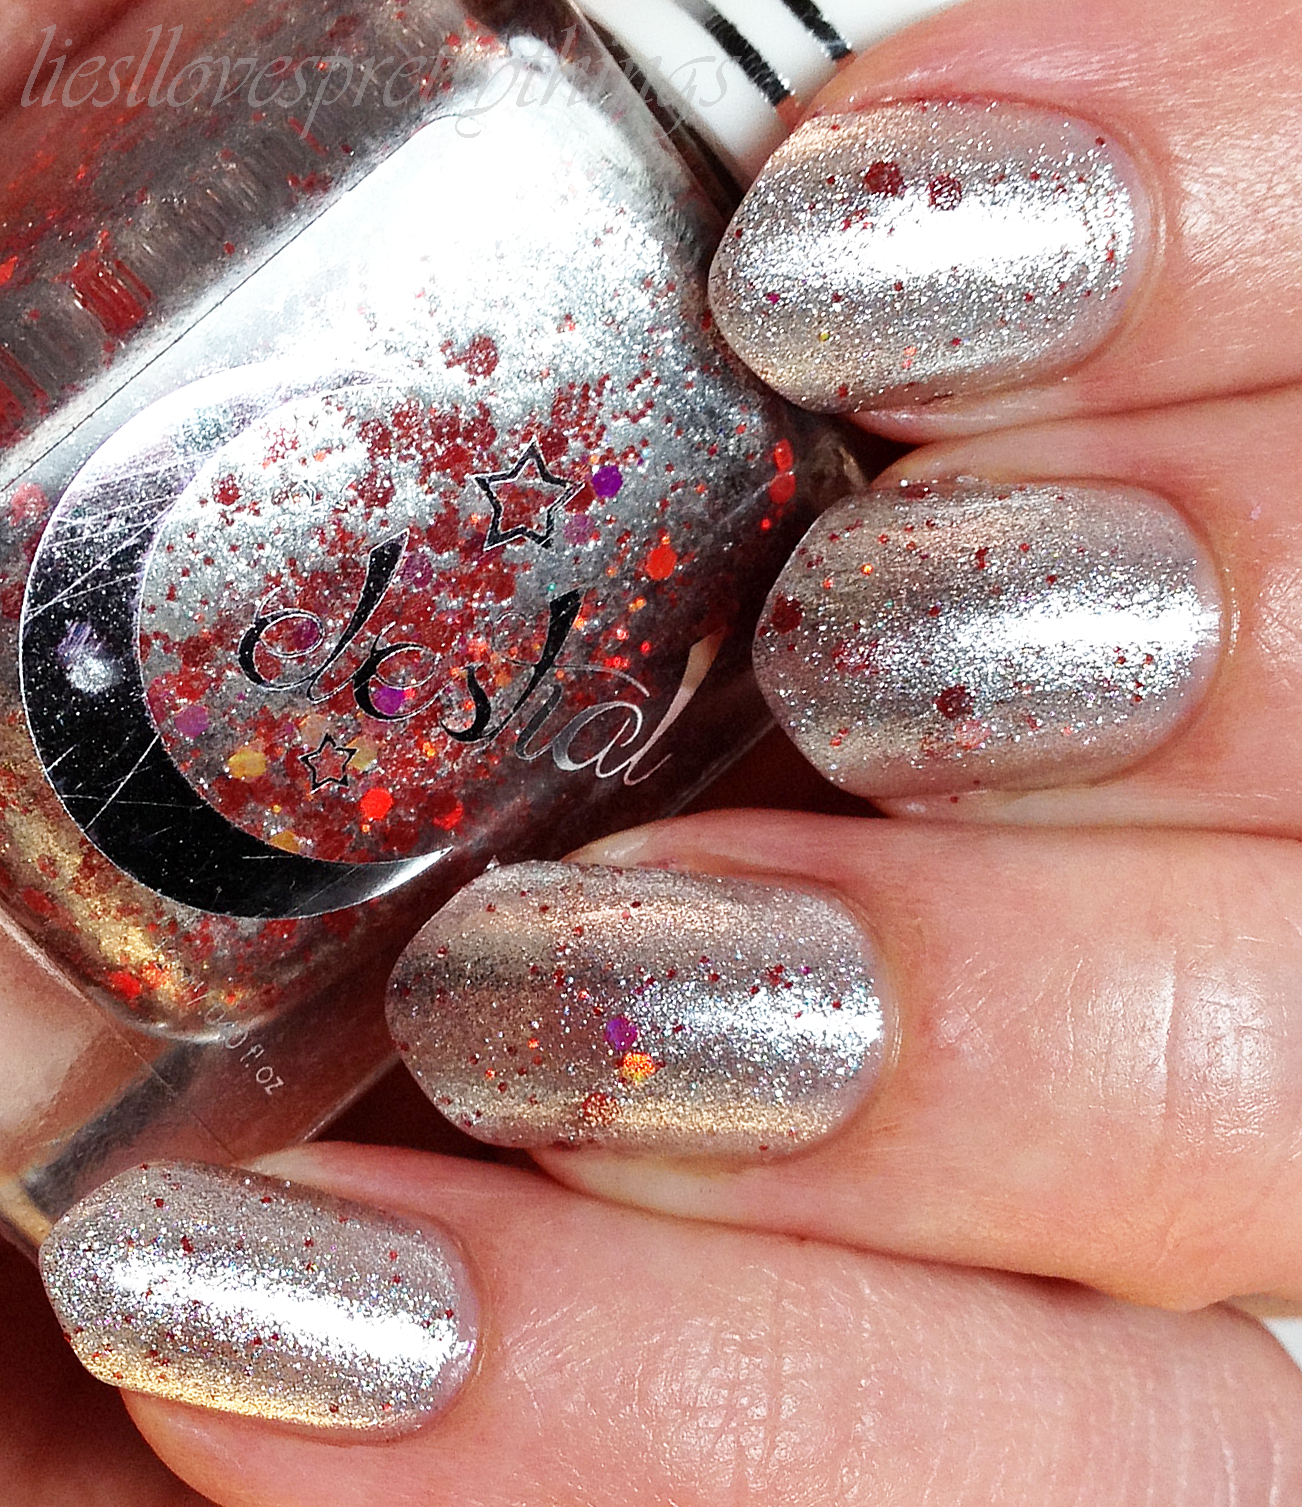 Celestial Cosmetics Chrome Amaranth swatch and review